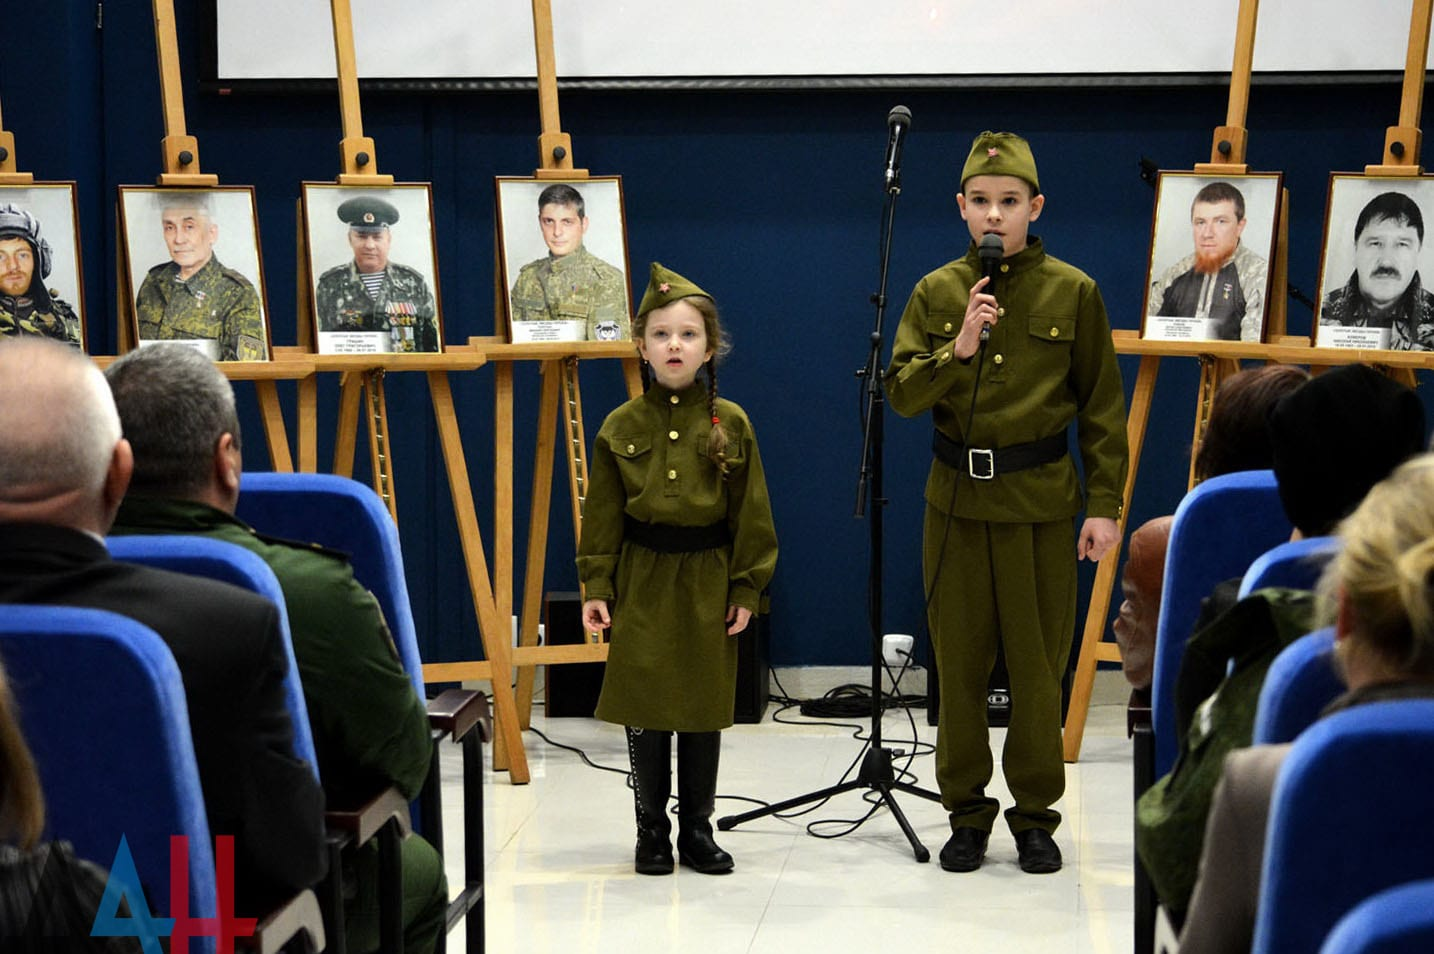 Image Public commemoration of heroes in Donetsk, Ukraine, 2017